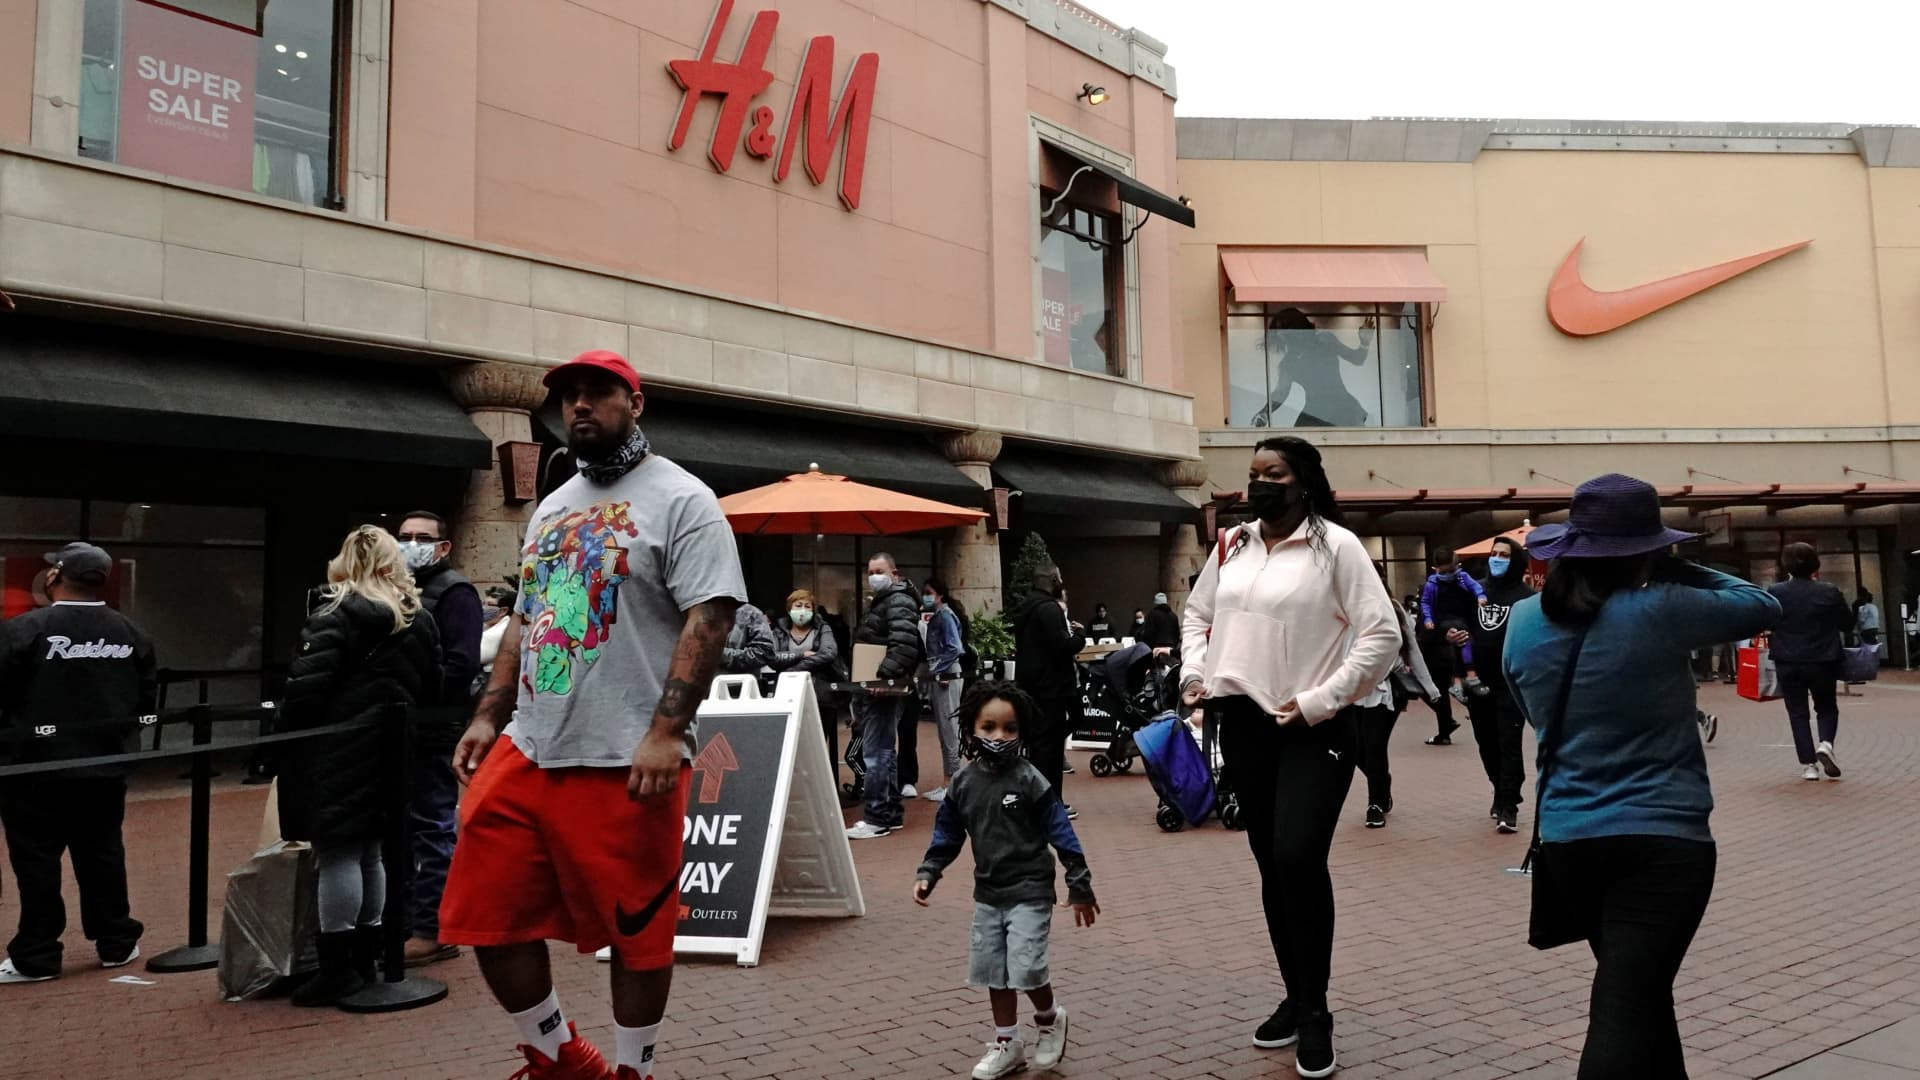 A family walks past people queuing to enter H&M and Nike stores at Citadel Outlets as the coronavirus disease (COVID-19) cases surge in Commerce, California, December 27, 2020.